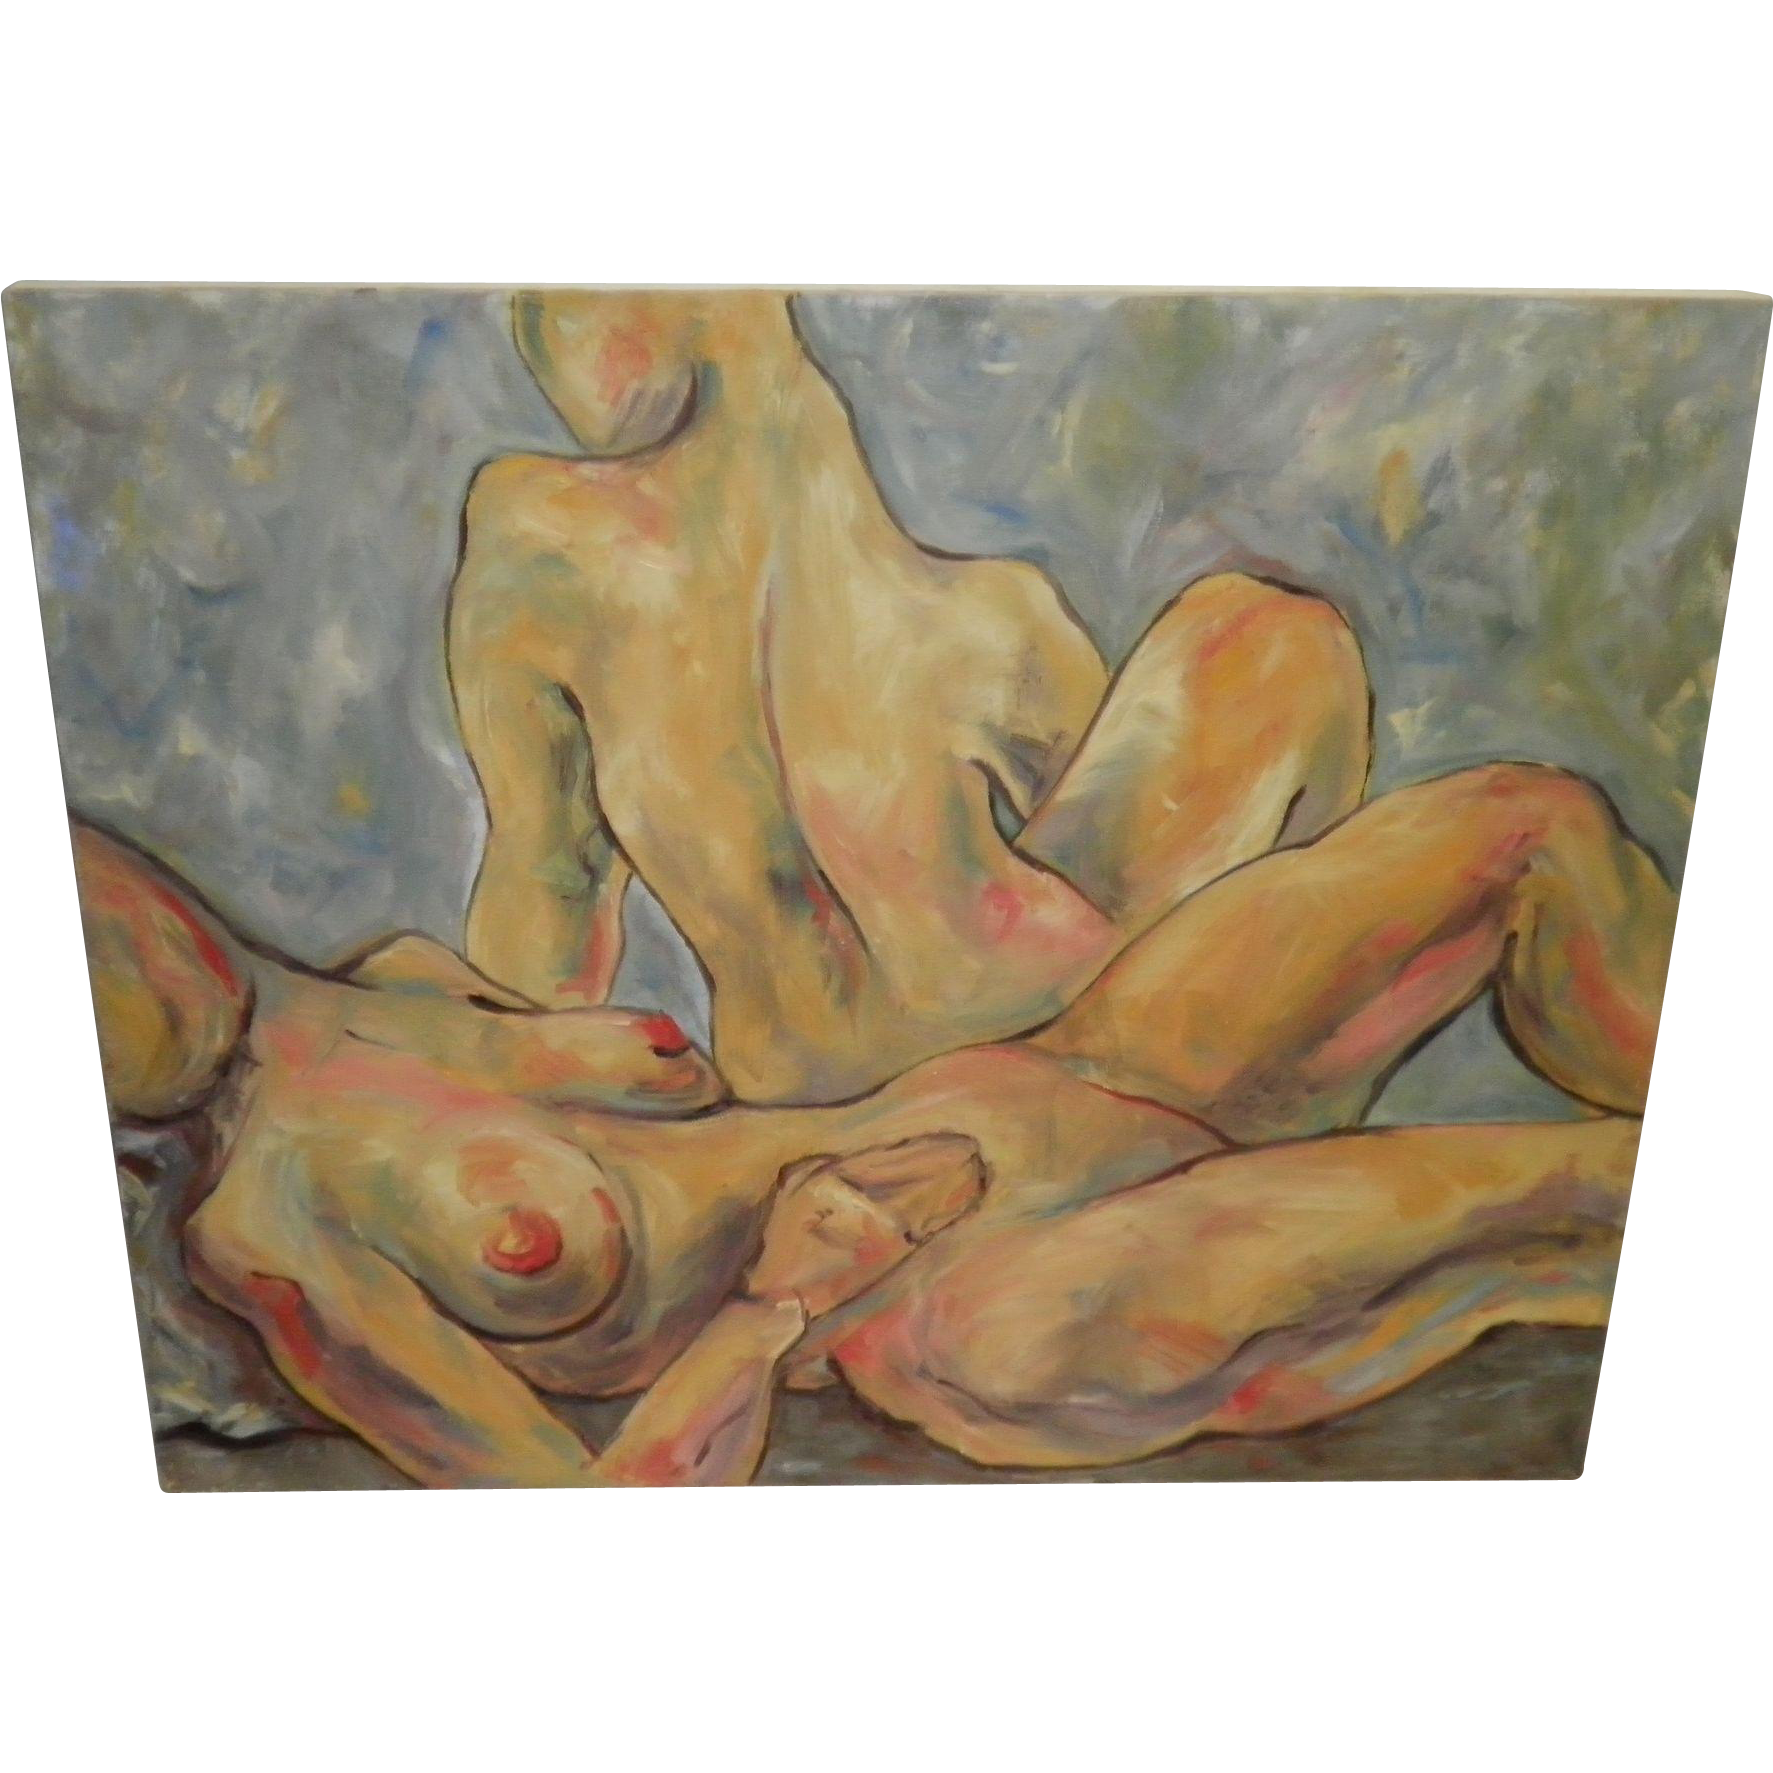 Oil On Canvas Nude Abstract Painting Signed Westre